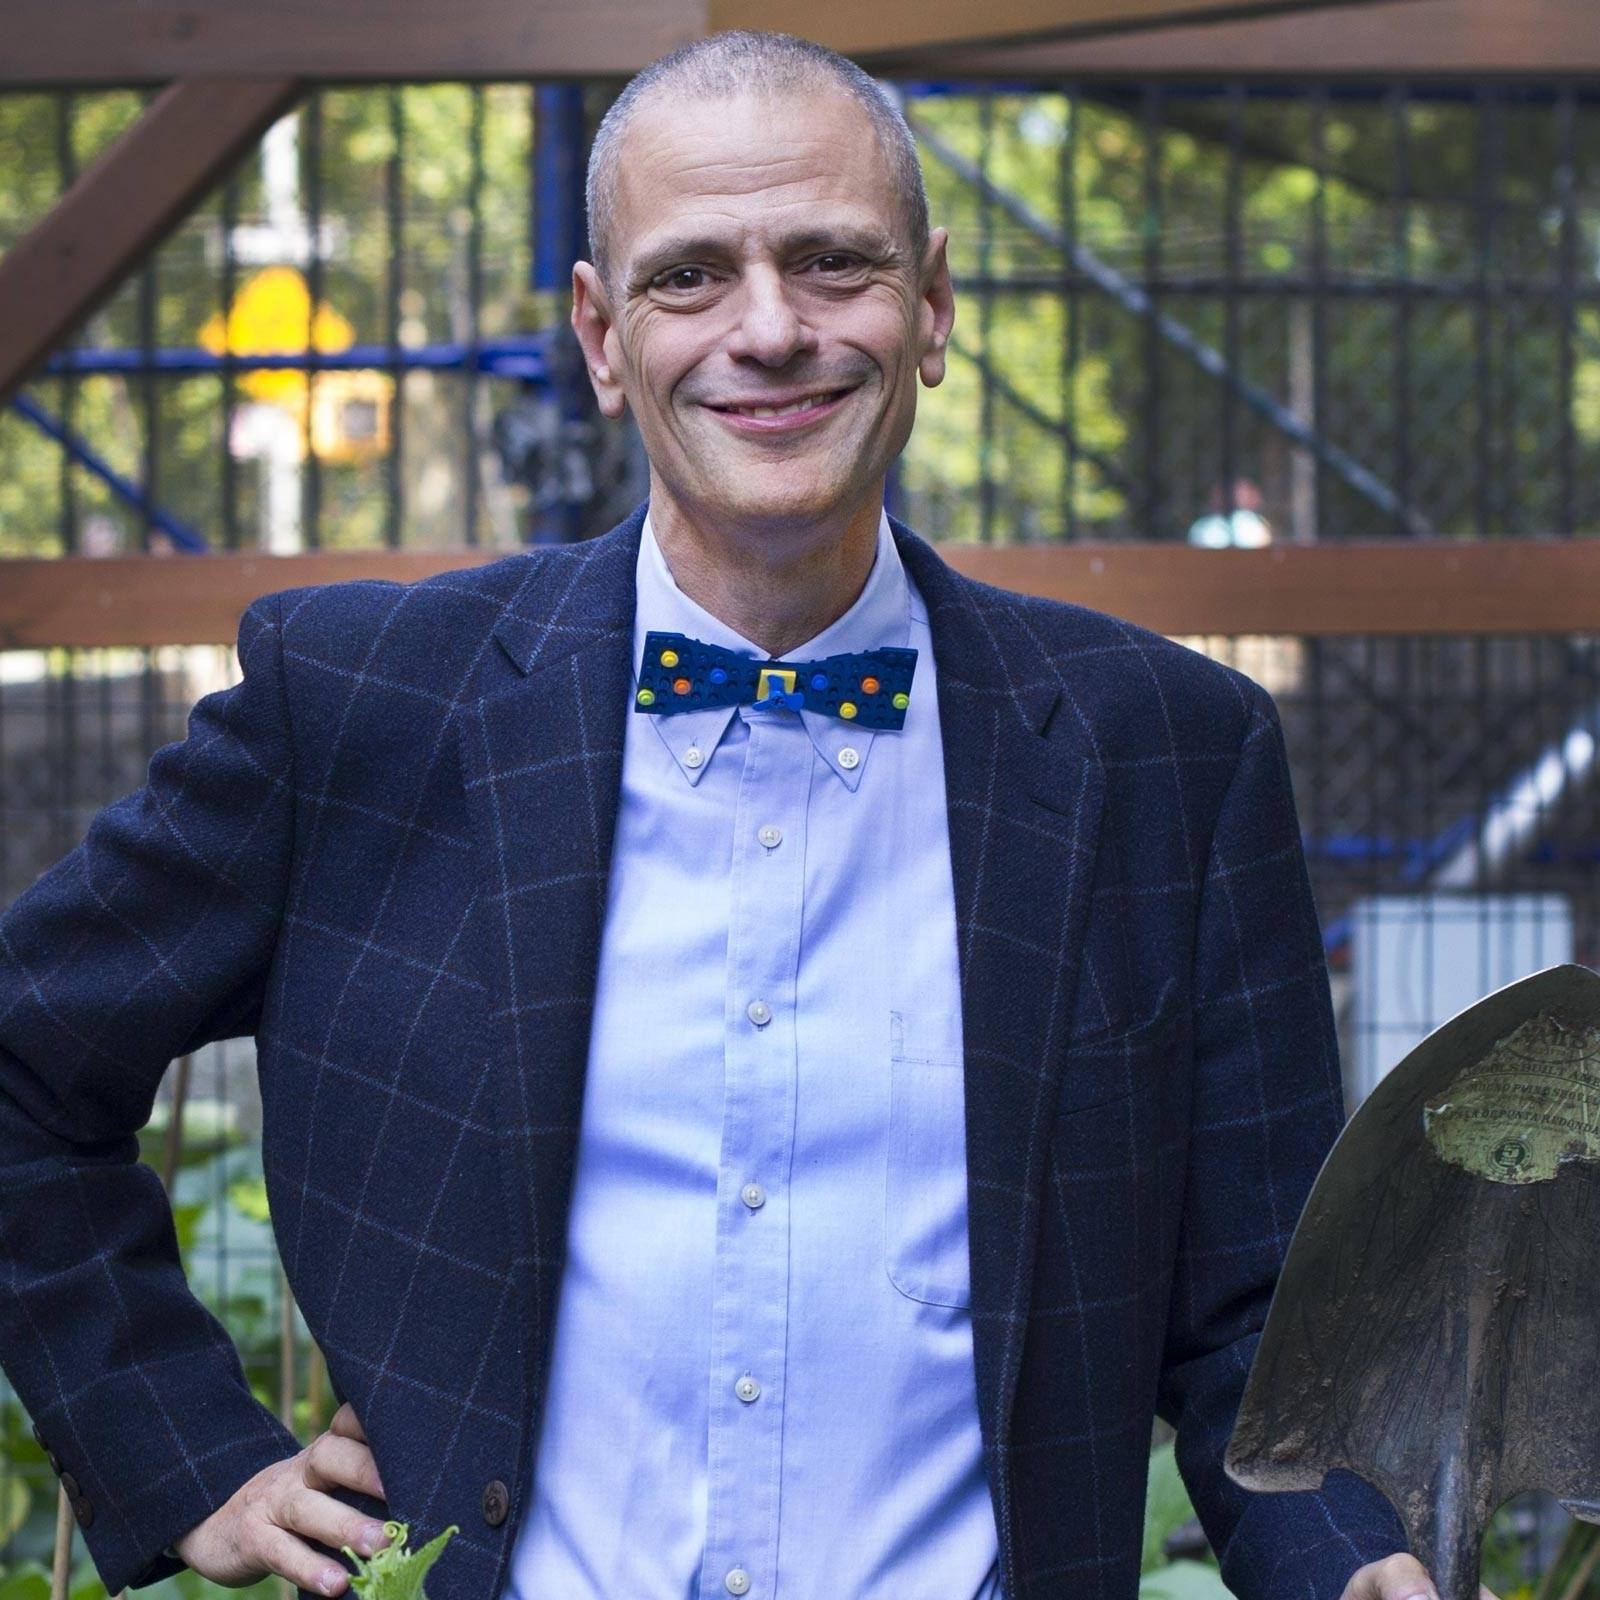 Welcome our founder Stephen Ritz to Facebook!